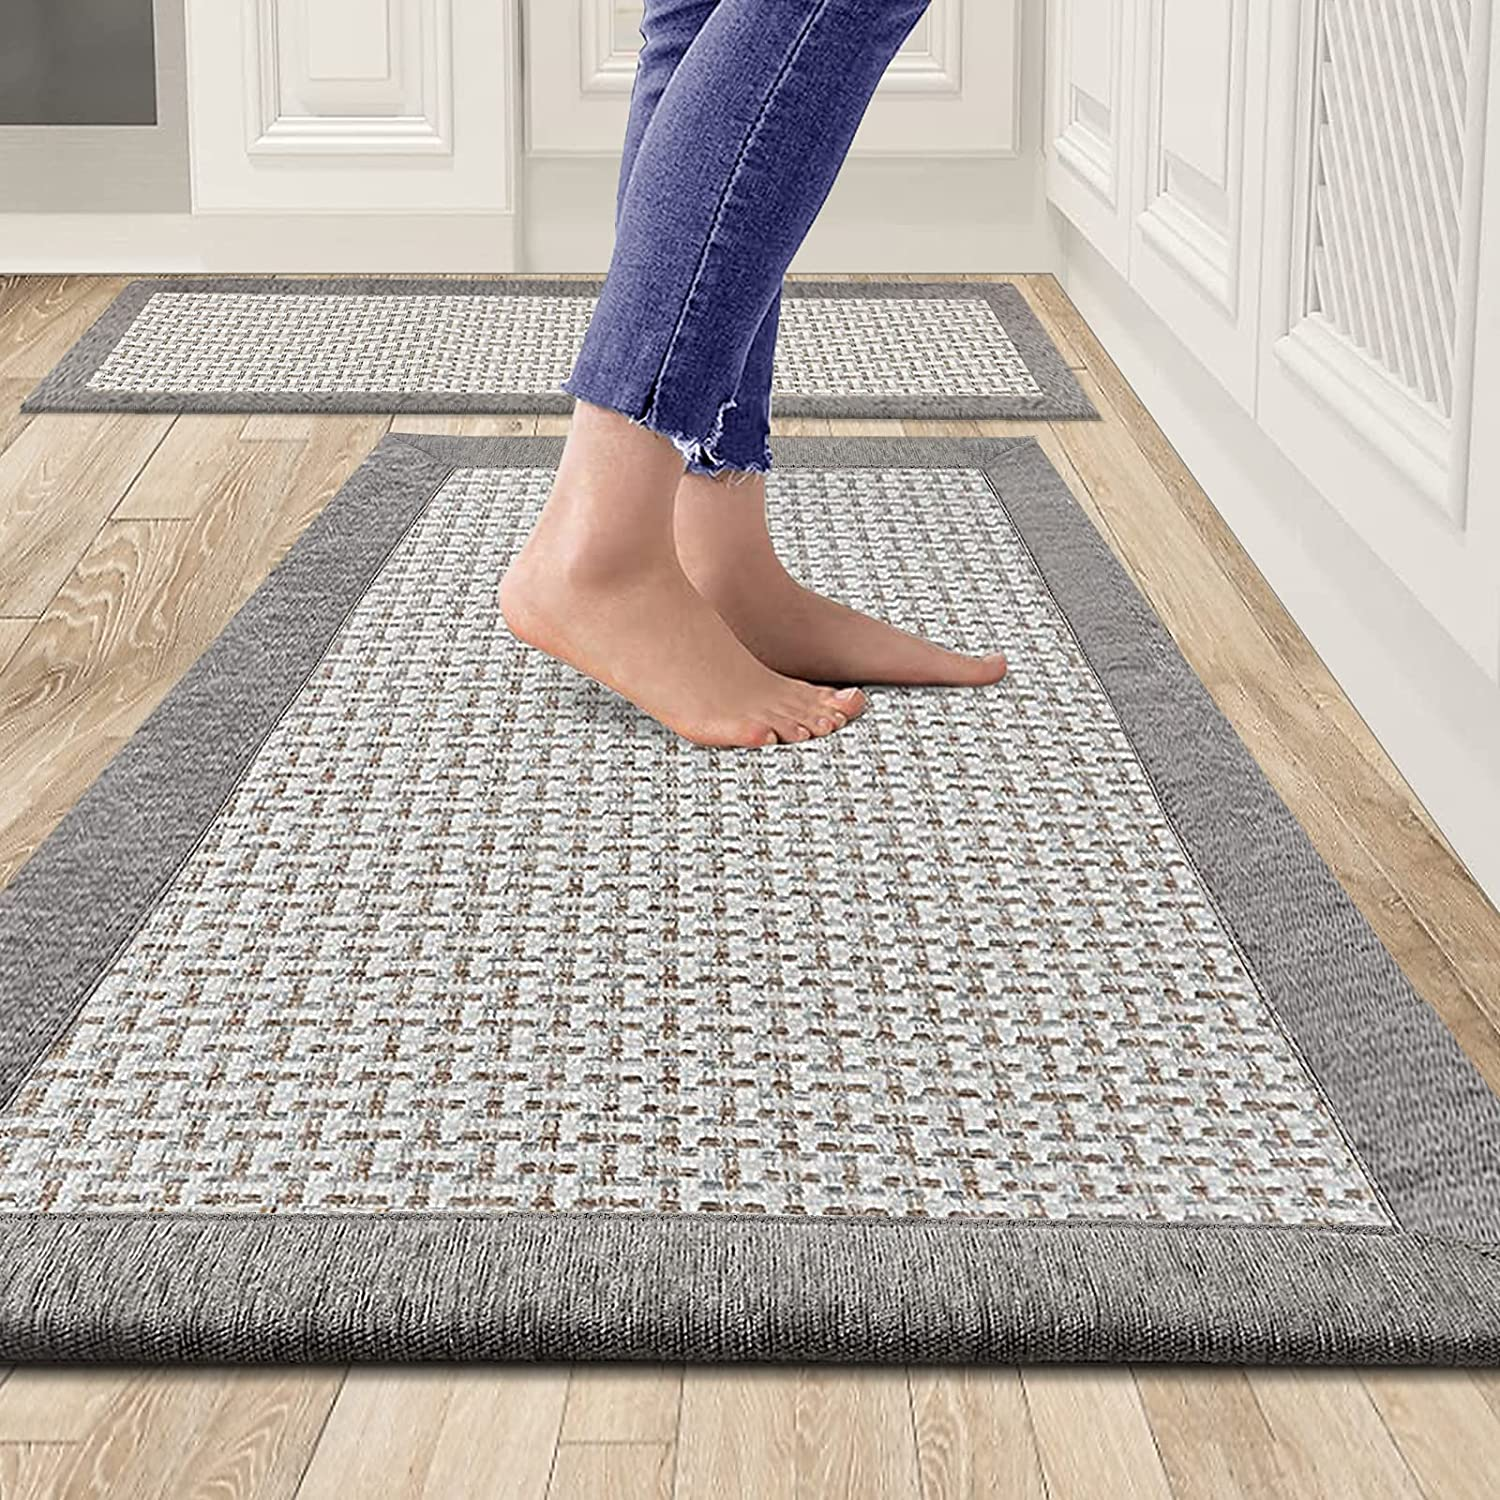 Kitchen Rugs and Mats Washable Kitc Rare Absorbent for Special price for a limited time Skip Non